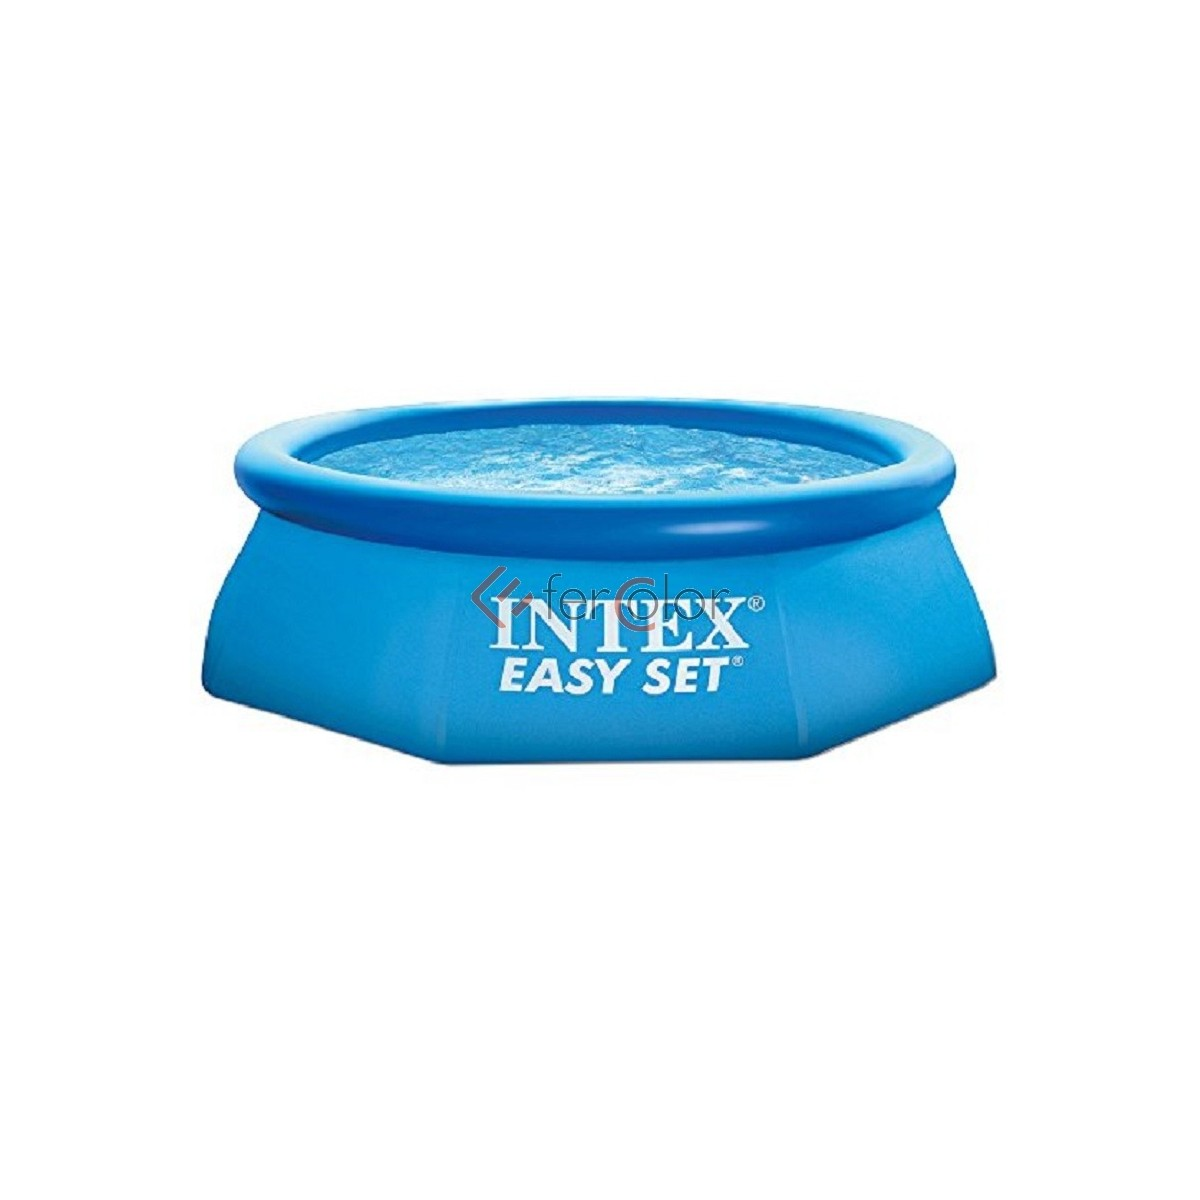 Intex Piscina Gonfiabile Piscina Intex Gonfiabile Easy Set Cm 244 X 76 H No Pompa